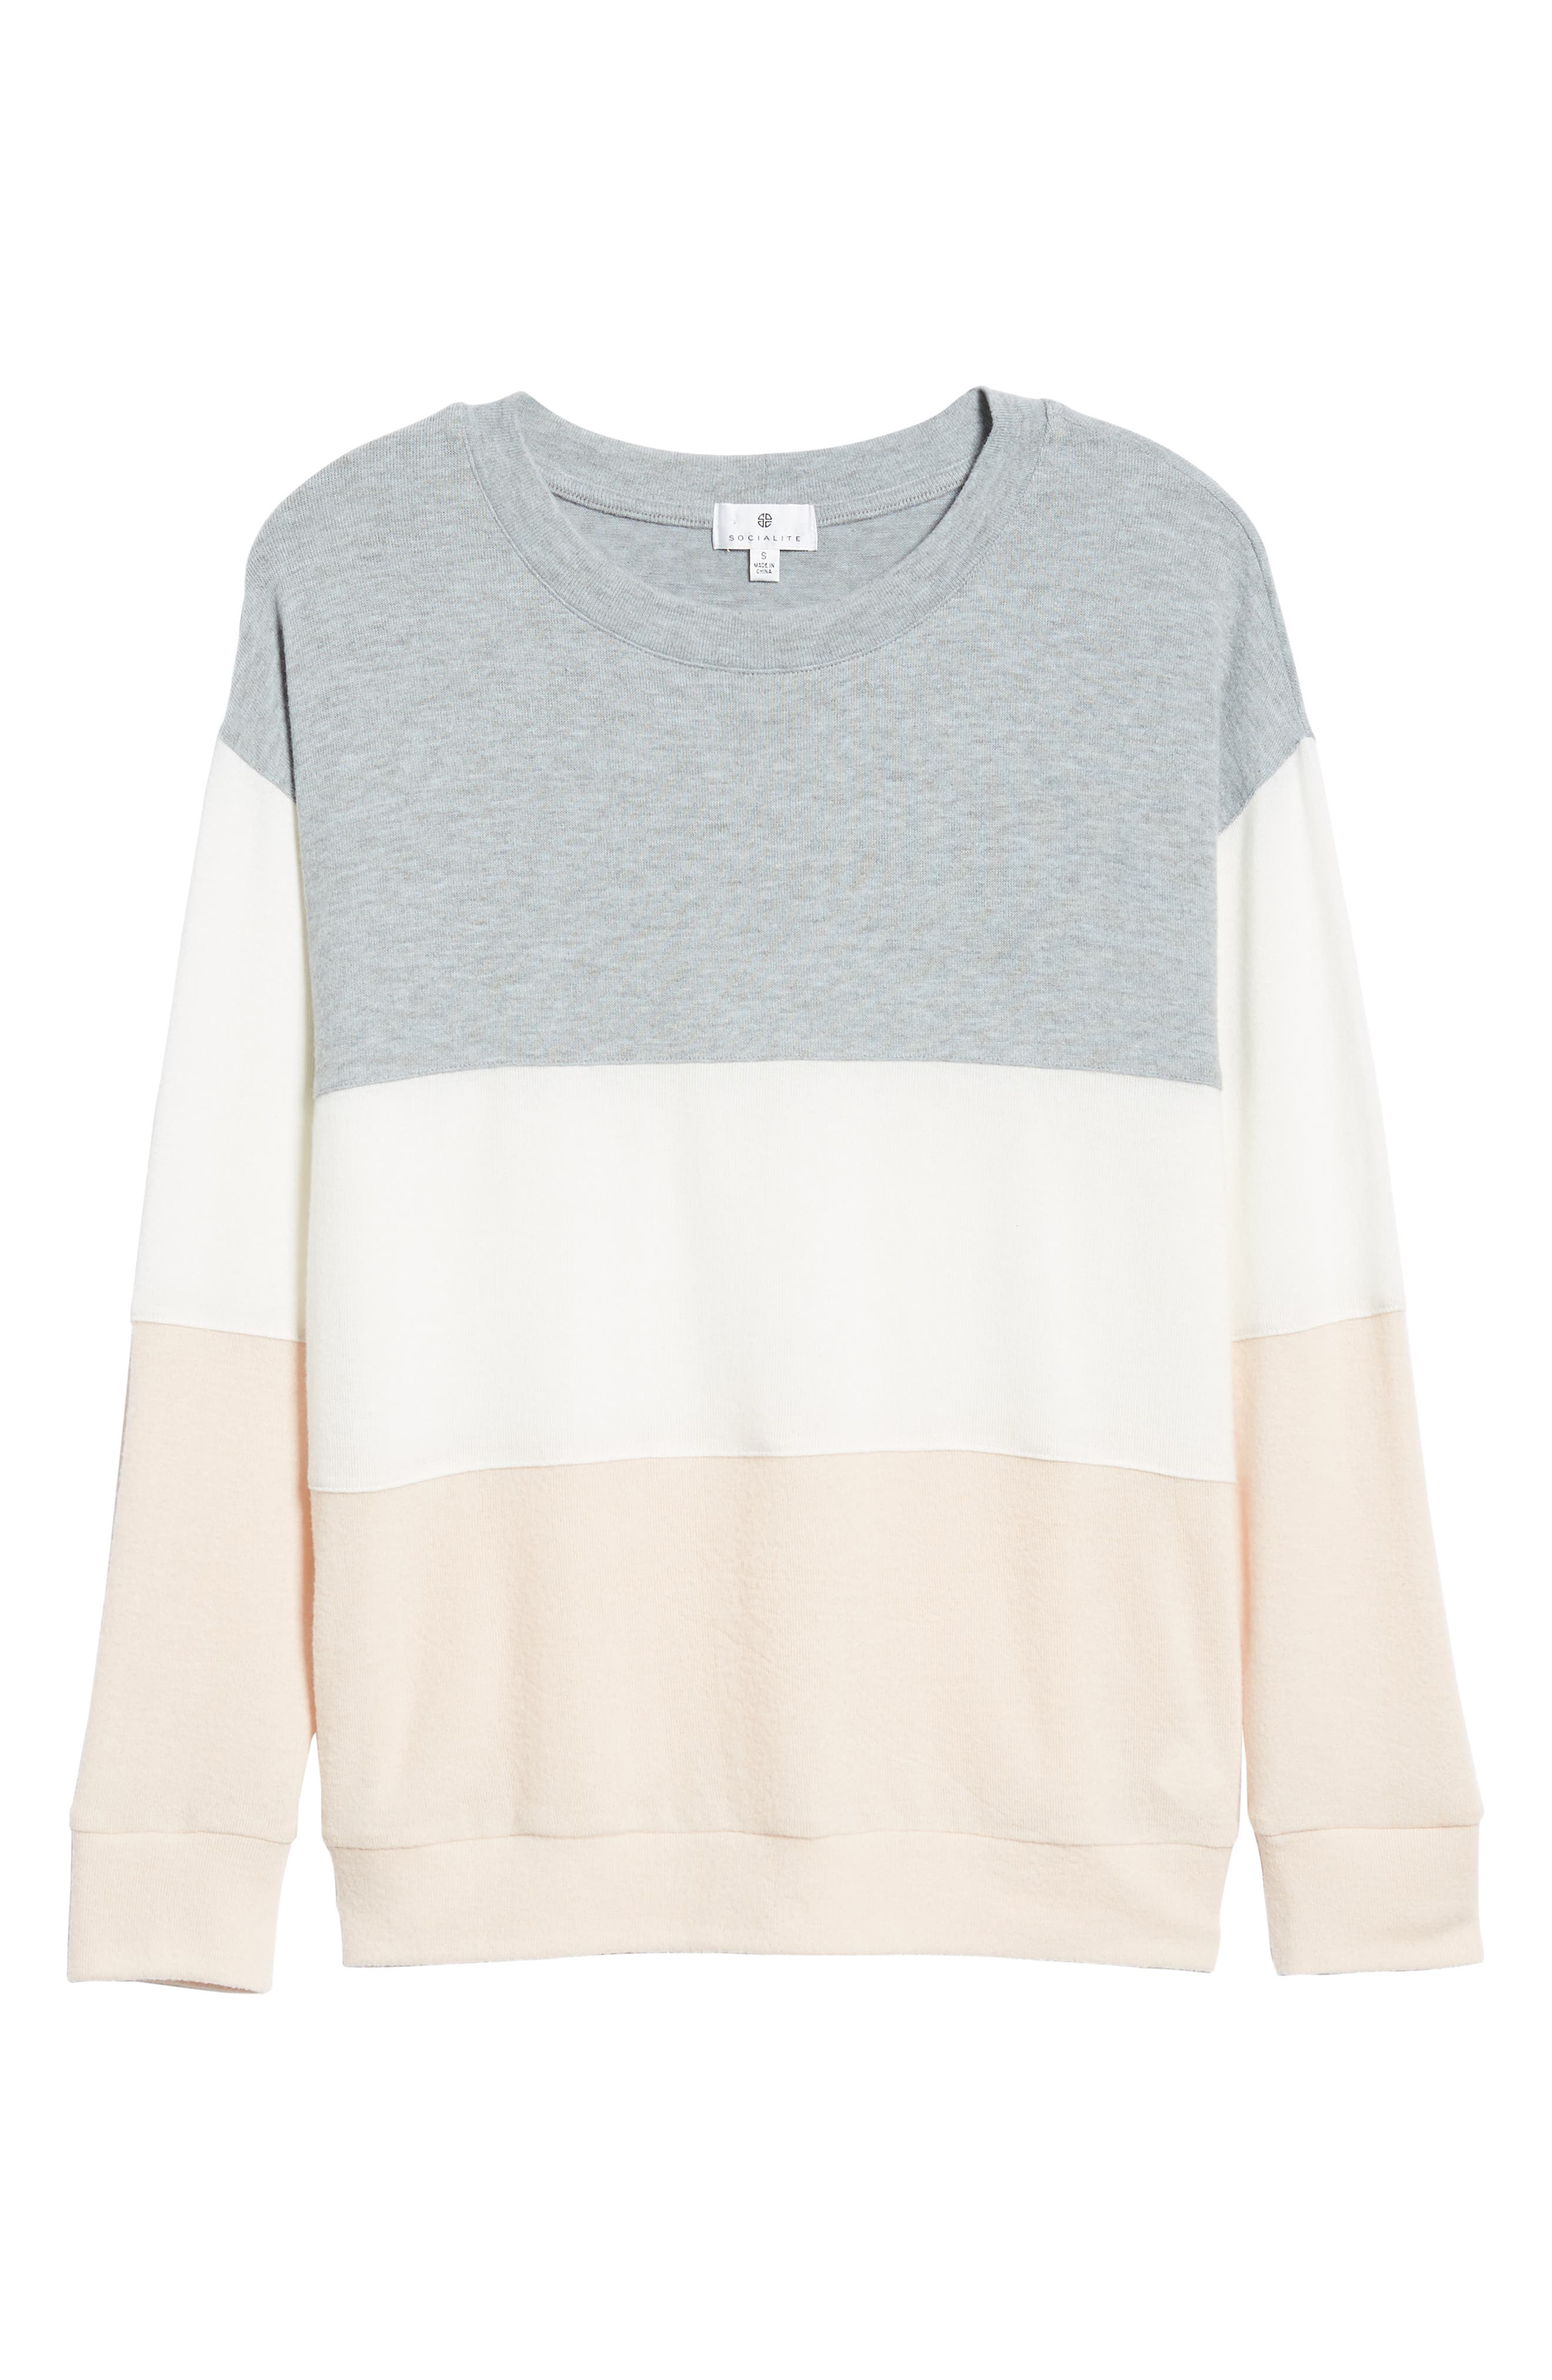 Colorblock Sweatshirt,                             Alternate thumbnail 6, color,                             GREY/ WHITE/ PINK